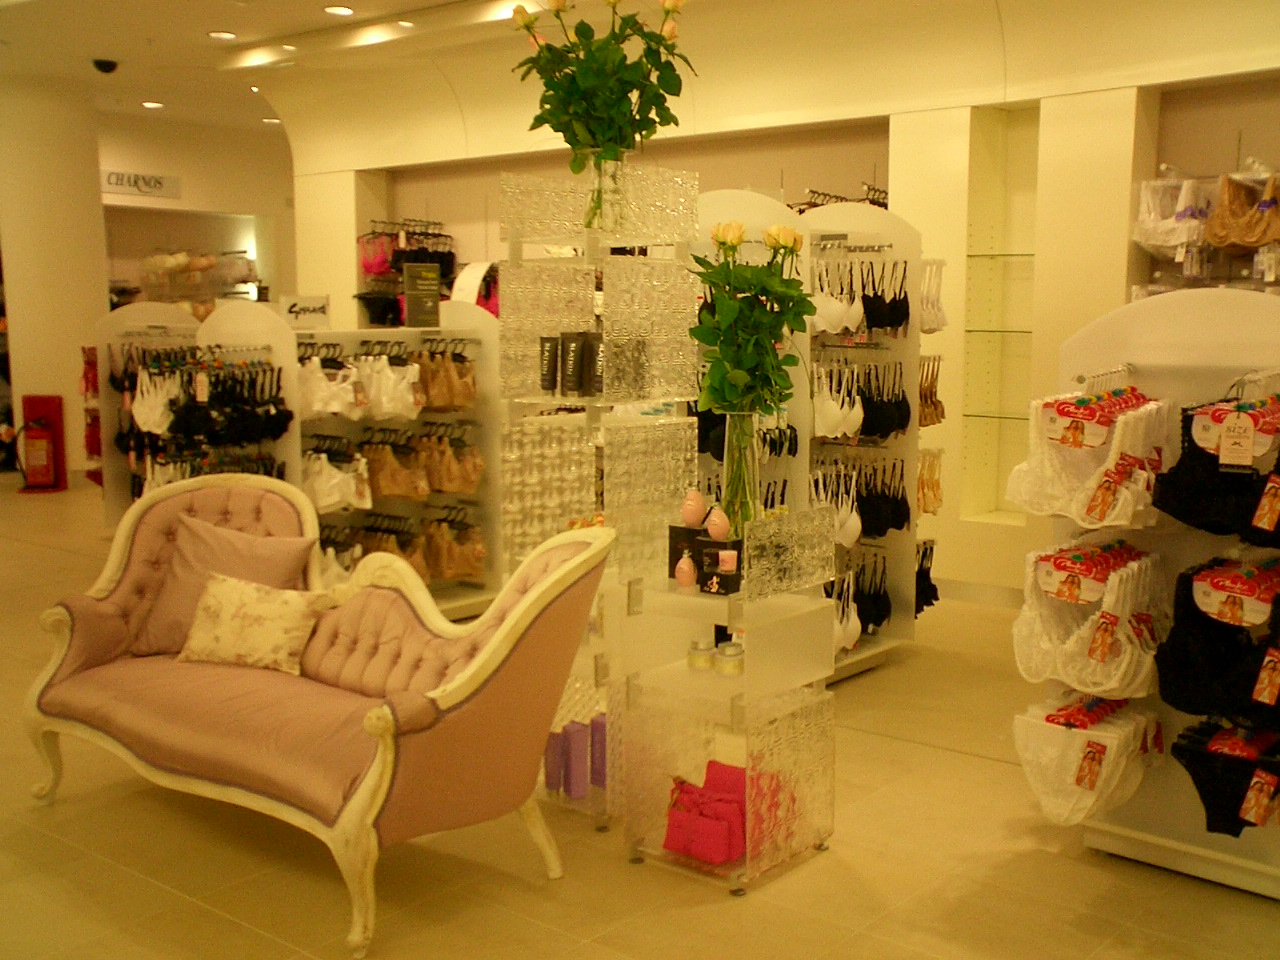 Business Plan Boutique Decoration Lingerie Store Ideas And Inspiration International Visual